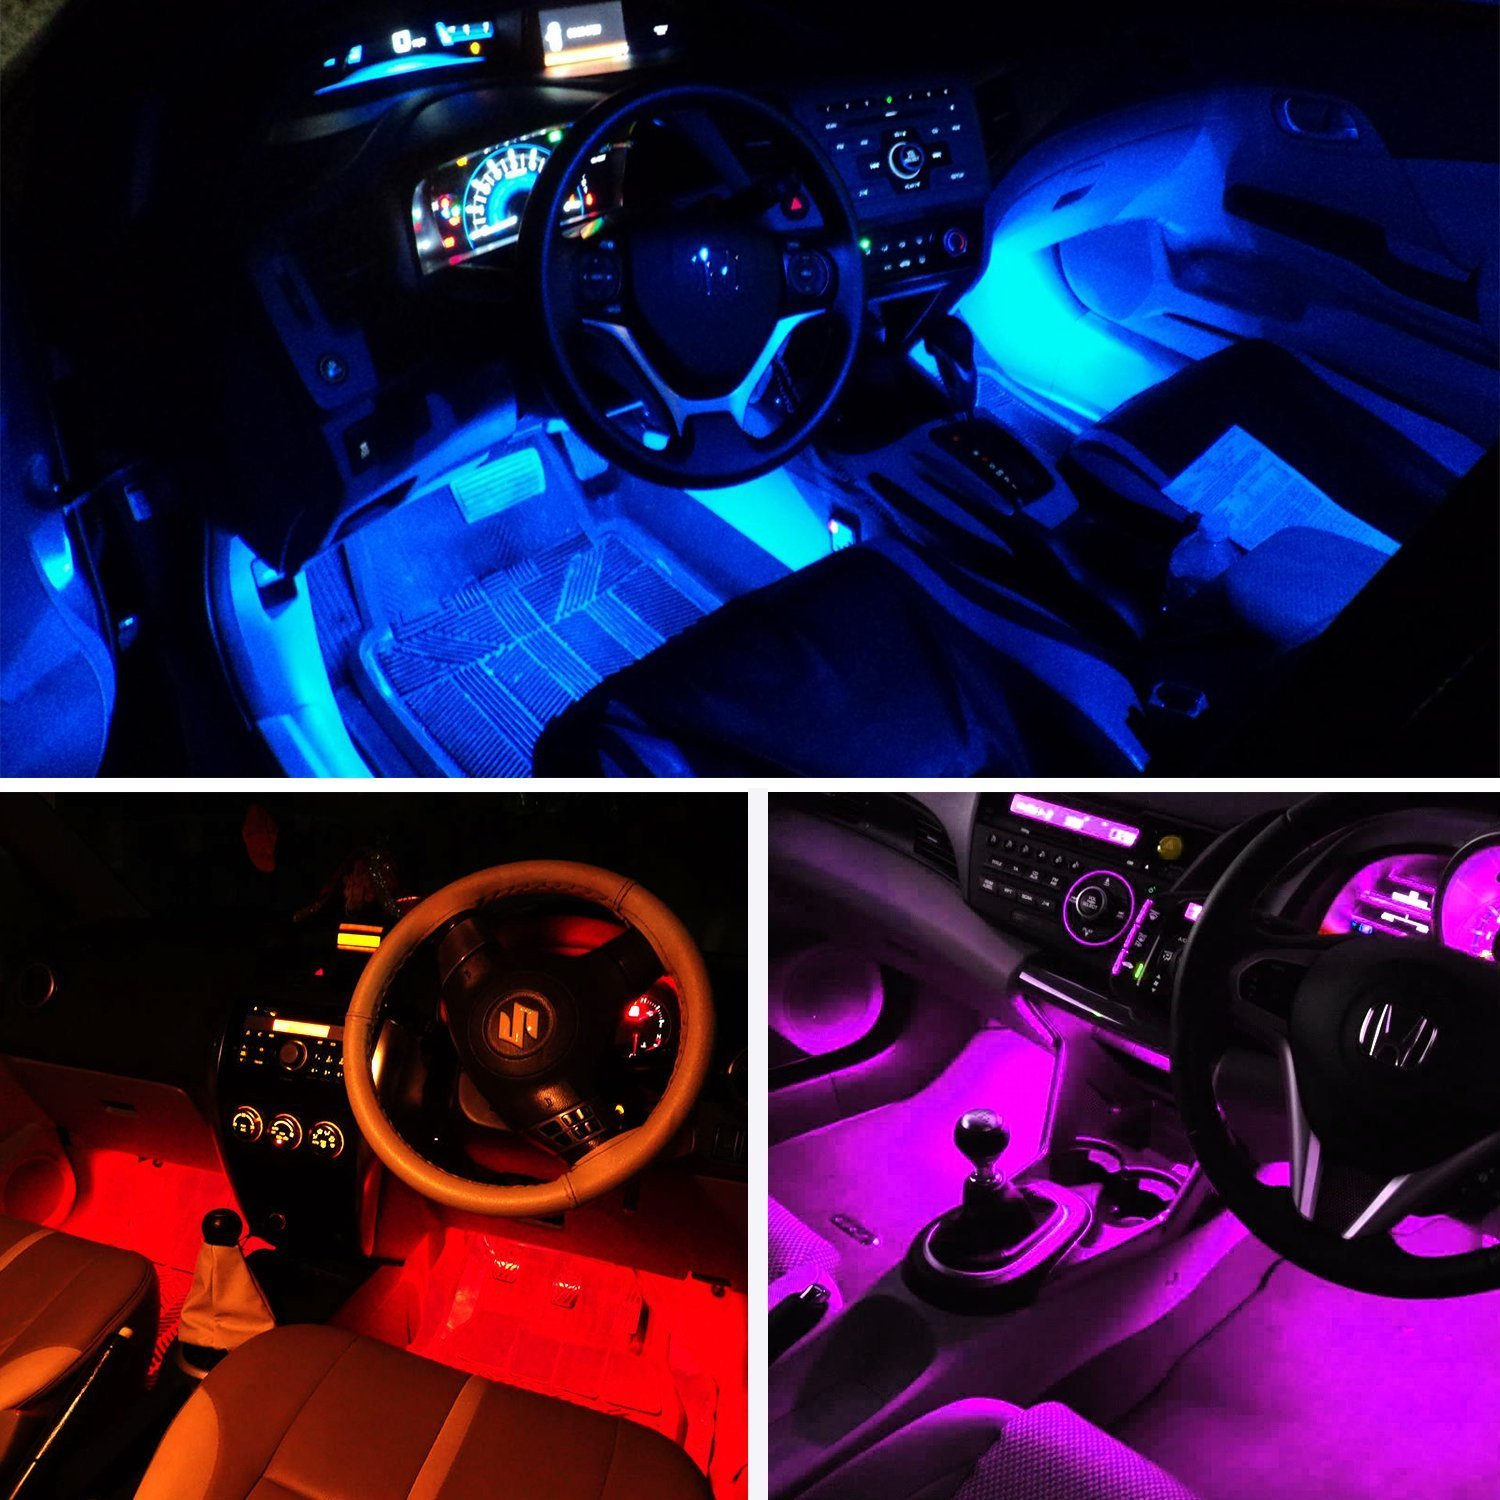 Adecorty ADCLS01 4pcs 48 LED Car LED Strip Light DC 12V Multicolor Music Car Interior Light LED Under Dash Lighting Kit with Sound Active Function and Wireless Remote Control Car Charger Included